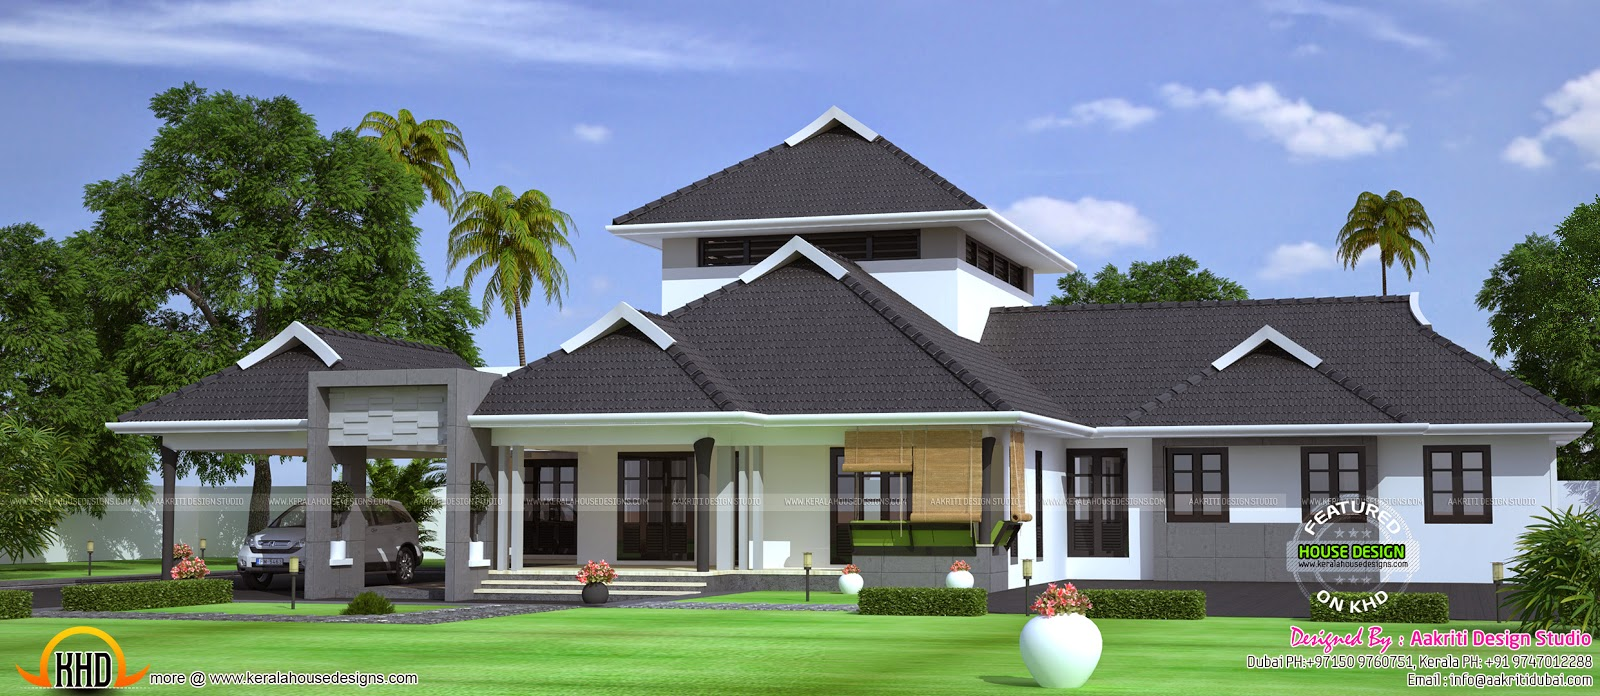 269 sq m single storied house kerala home design and for Big one story homes